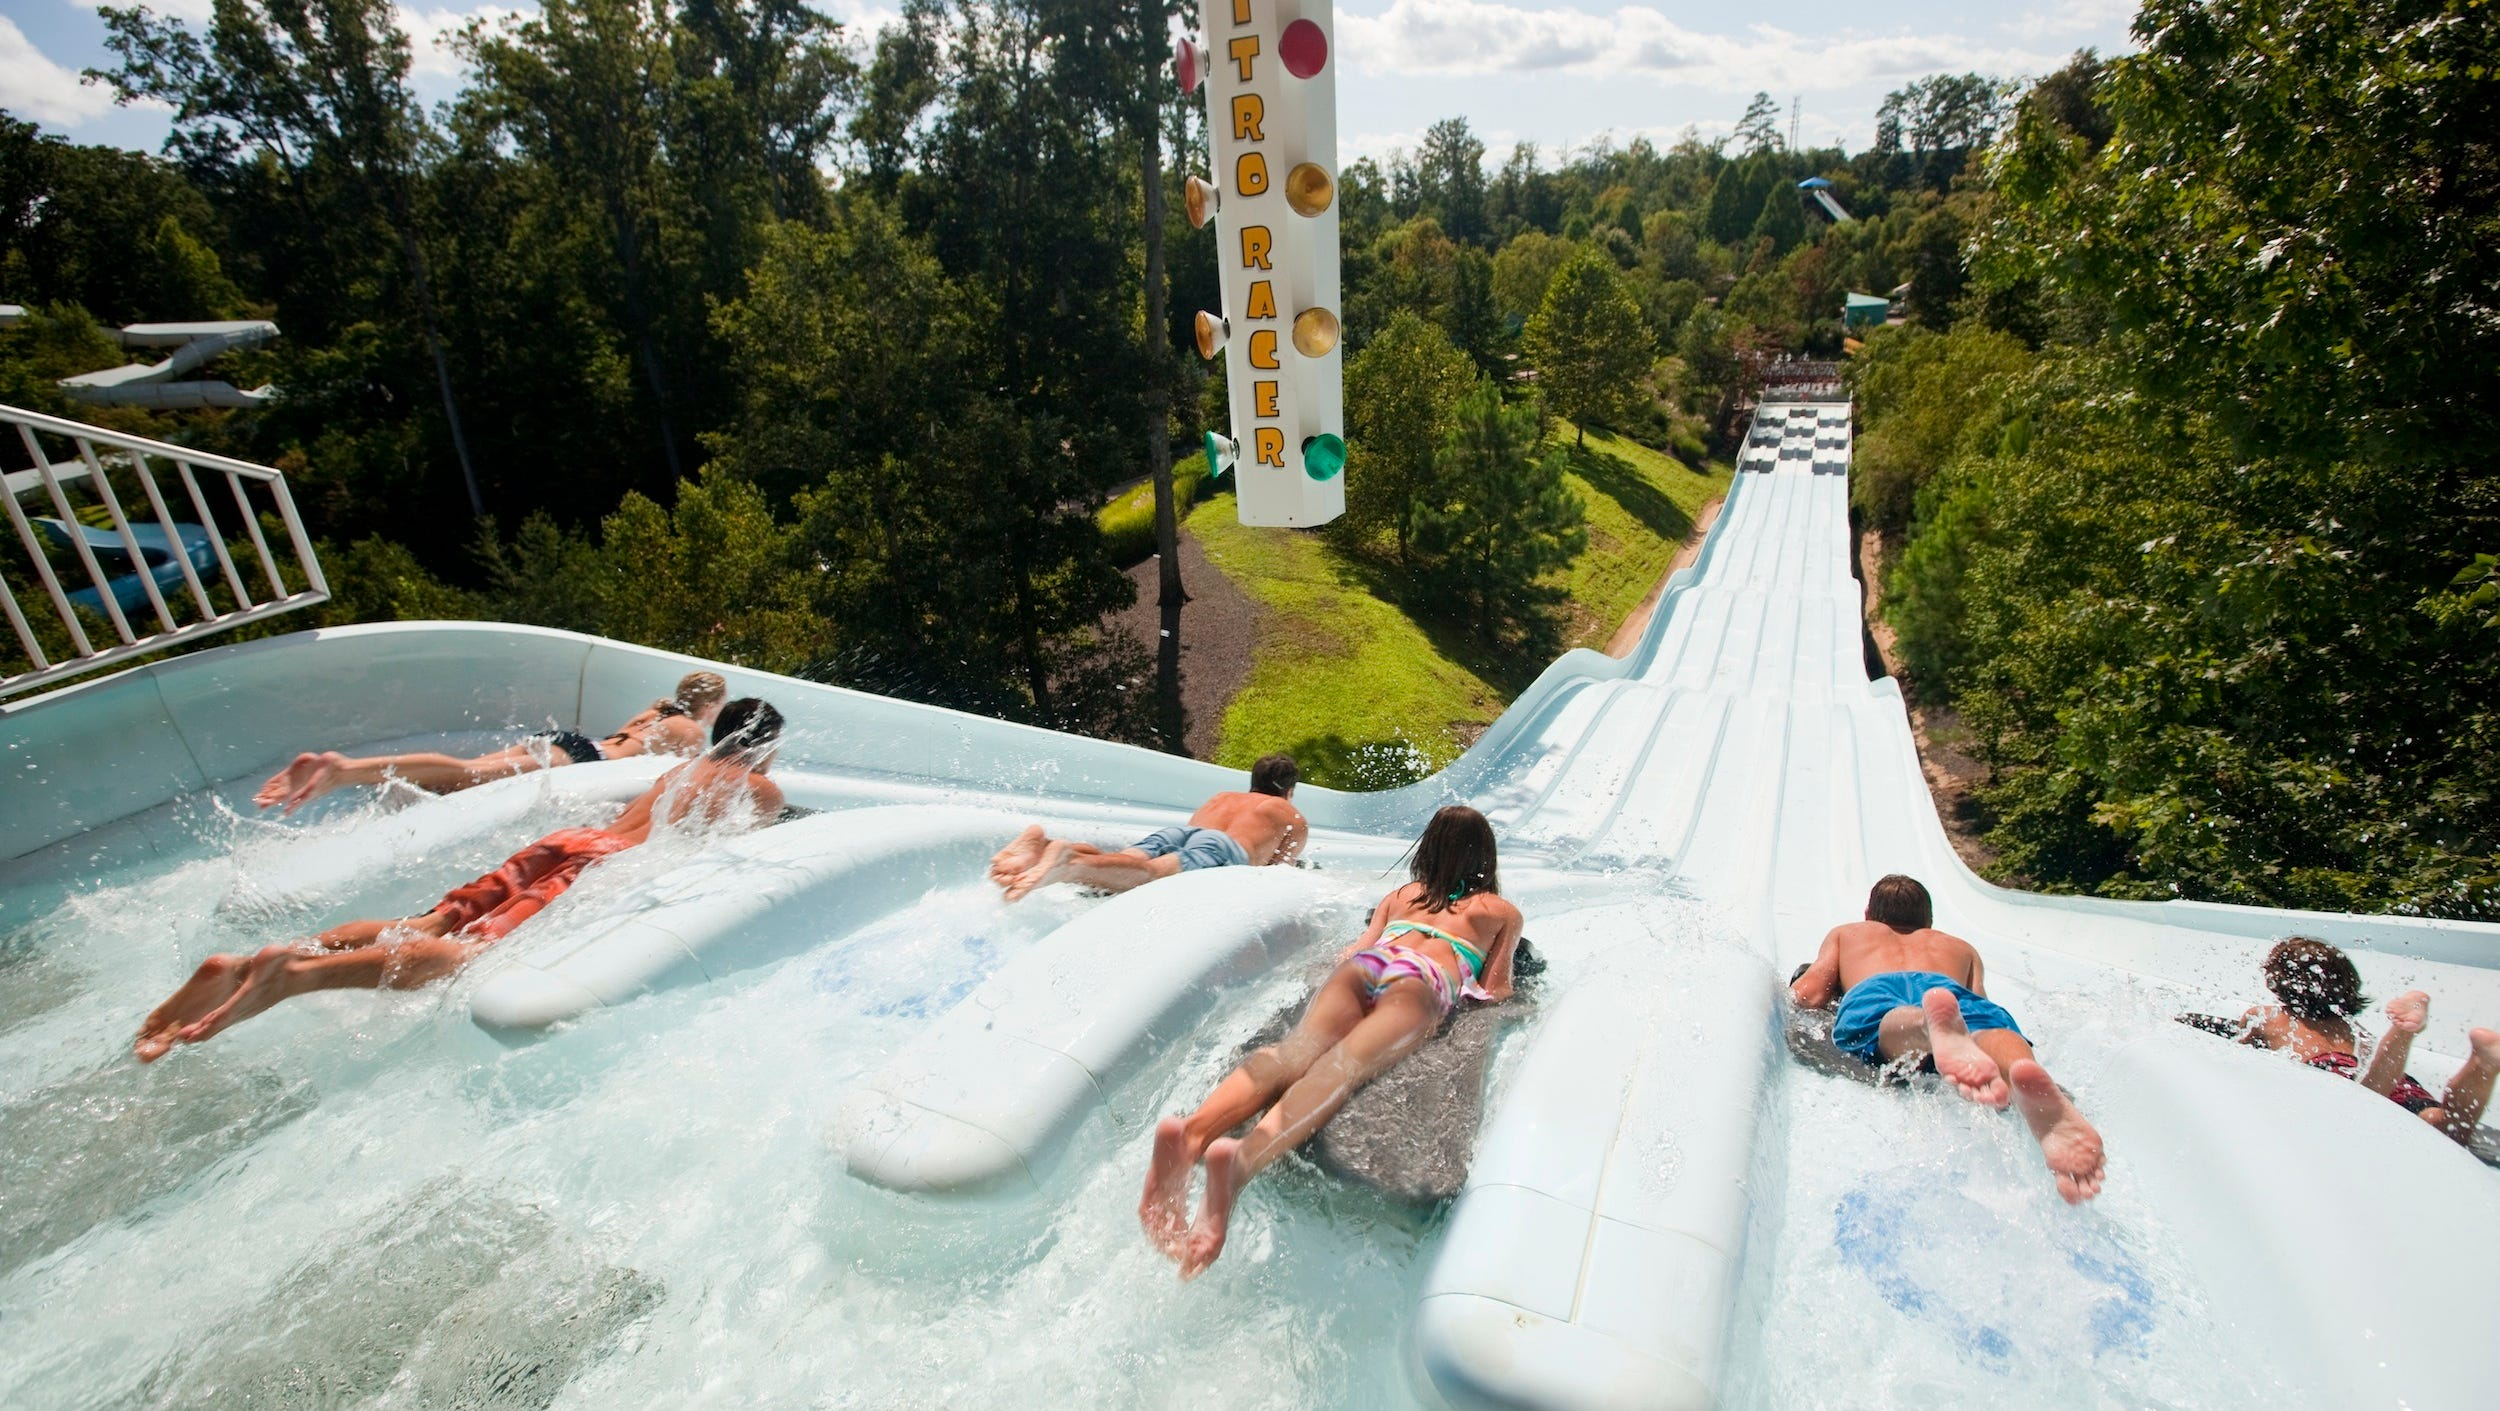 Coming in at No. 7 is Williamsburg, Va.'s family-favorite Water Country USA, with more than 30 rides and attractions. Adrenaline junkies love Vanish Point, a pair of near-vertical body slides where the ground literally drops from beneath you.